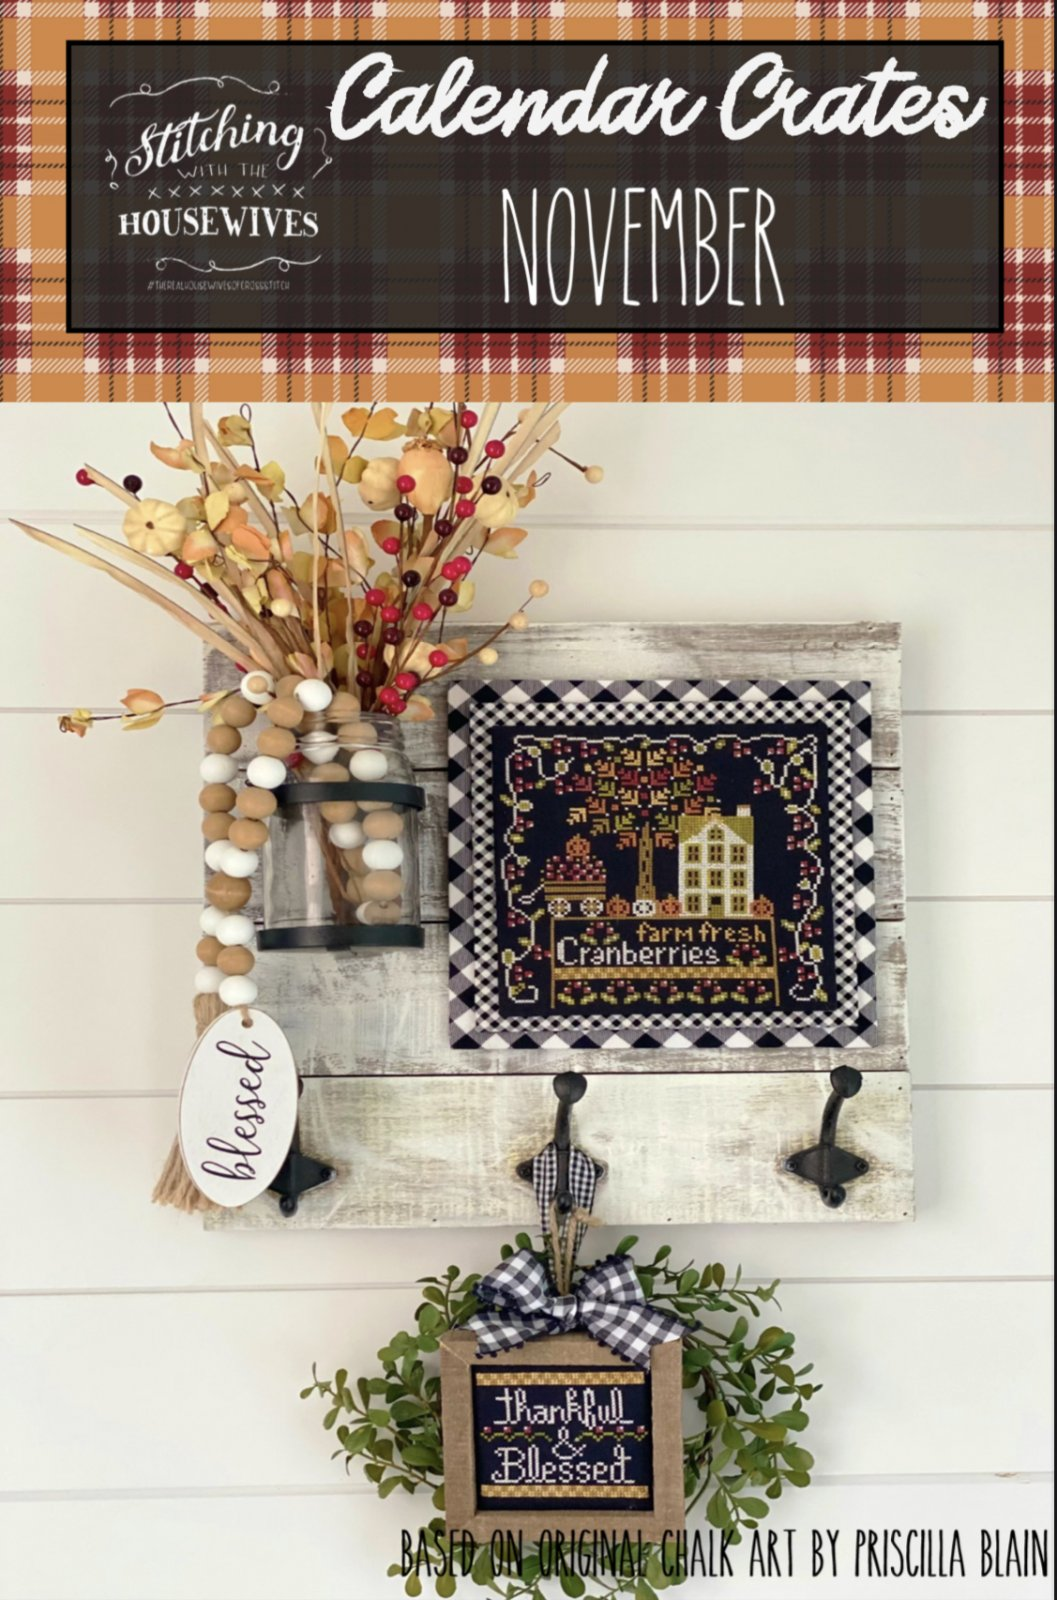 November Calendar Crates chart - Stitching with the Housewives